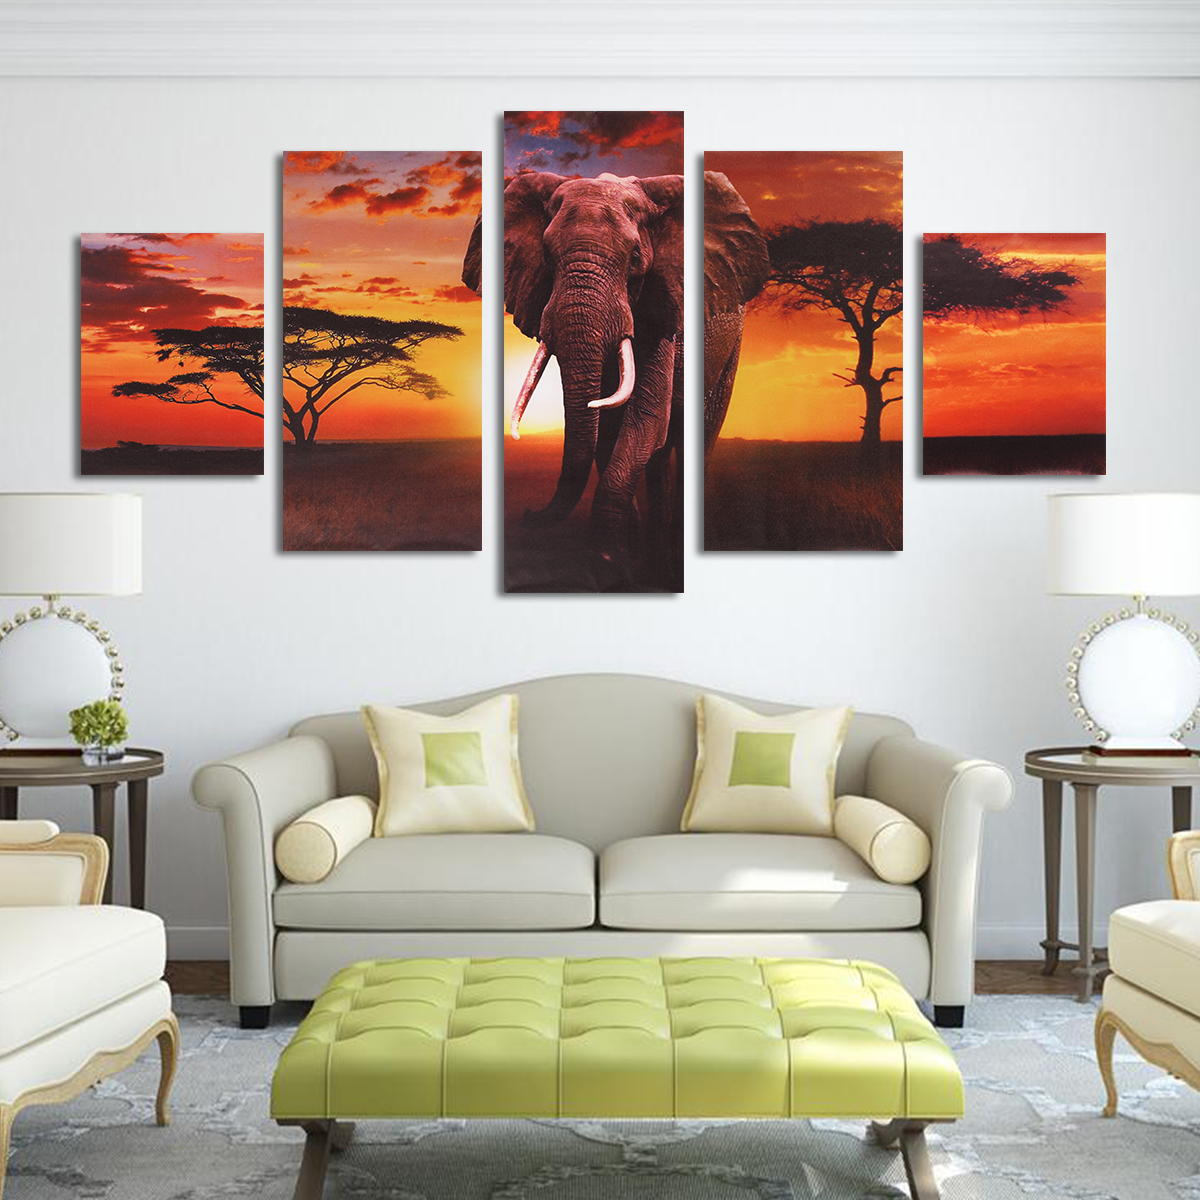 On Clearance 5in1 Modern Unframed Abstract Elephant Canvas